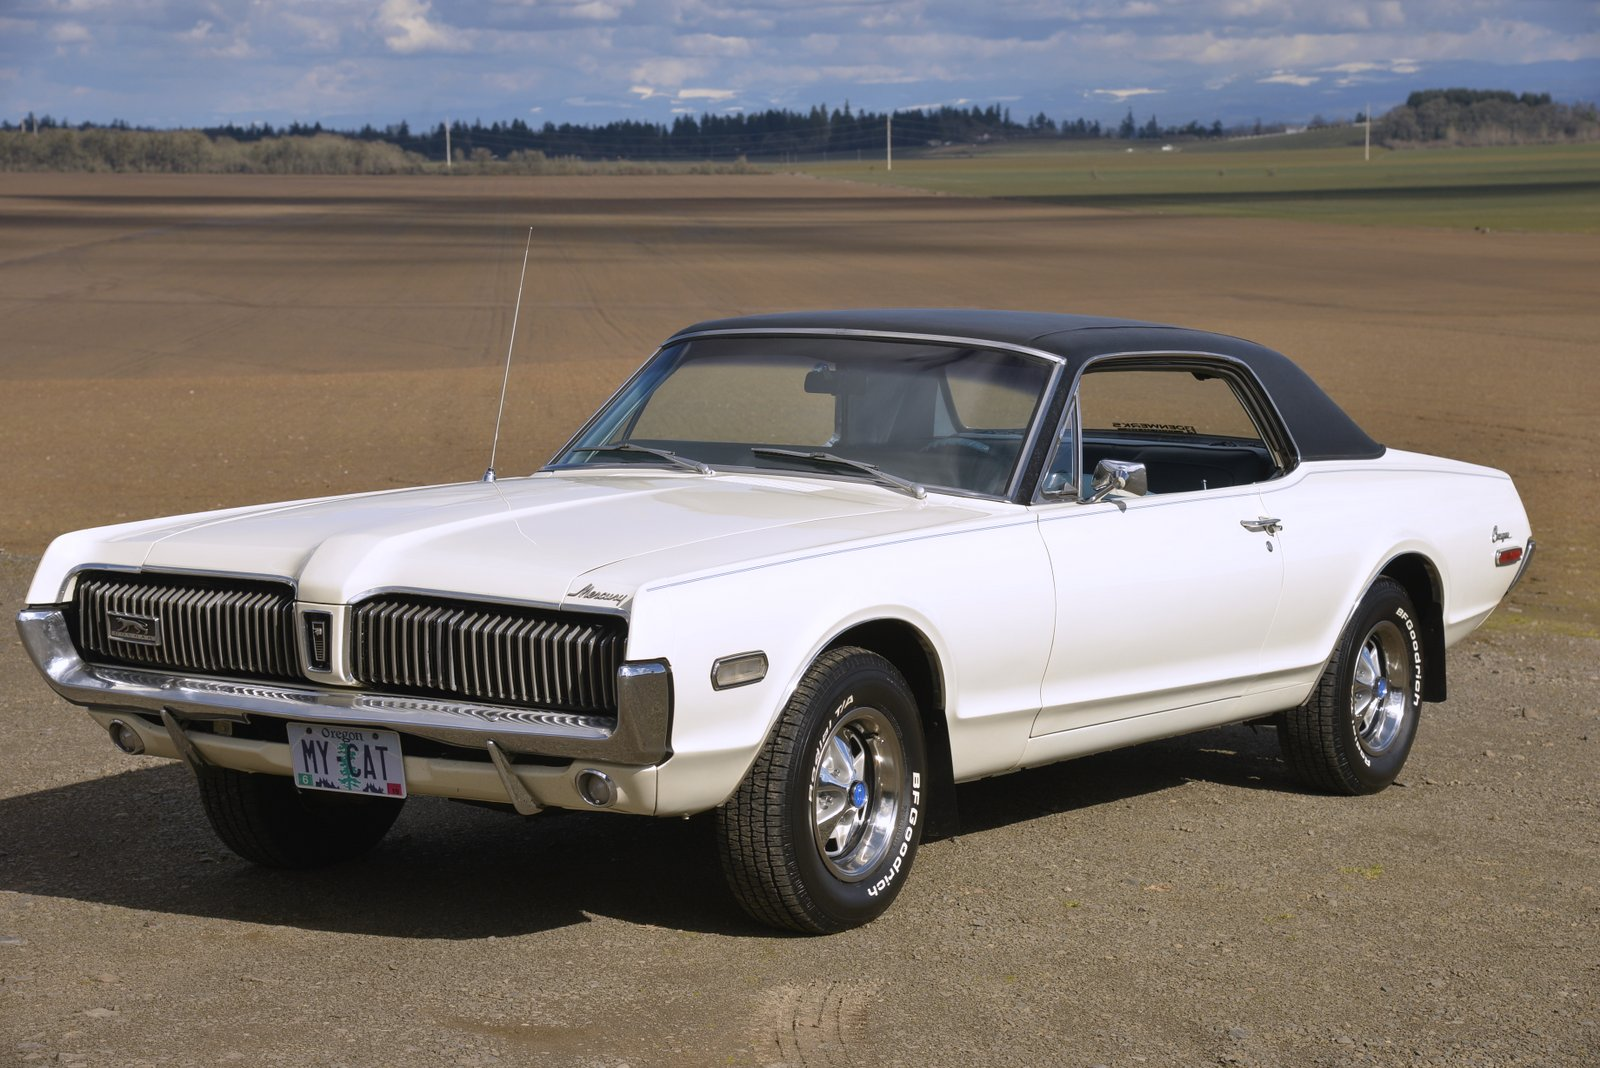 hight resolution of no reserve 1968 mercury cougar for sale on bat auctions sold for 18 000 on march 22 2019 lot 17 315 bring a trailer